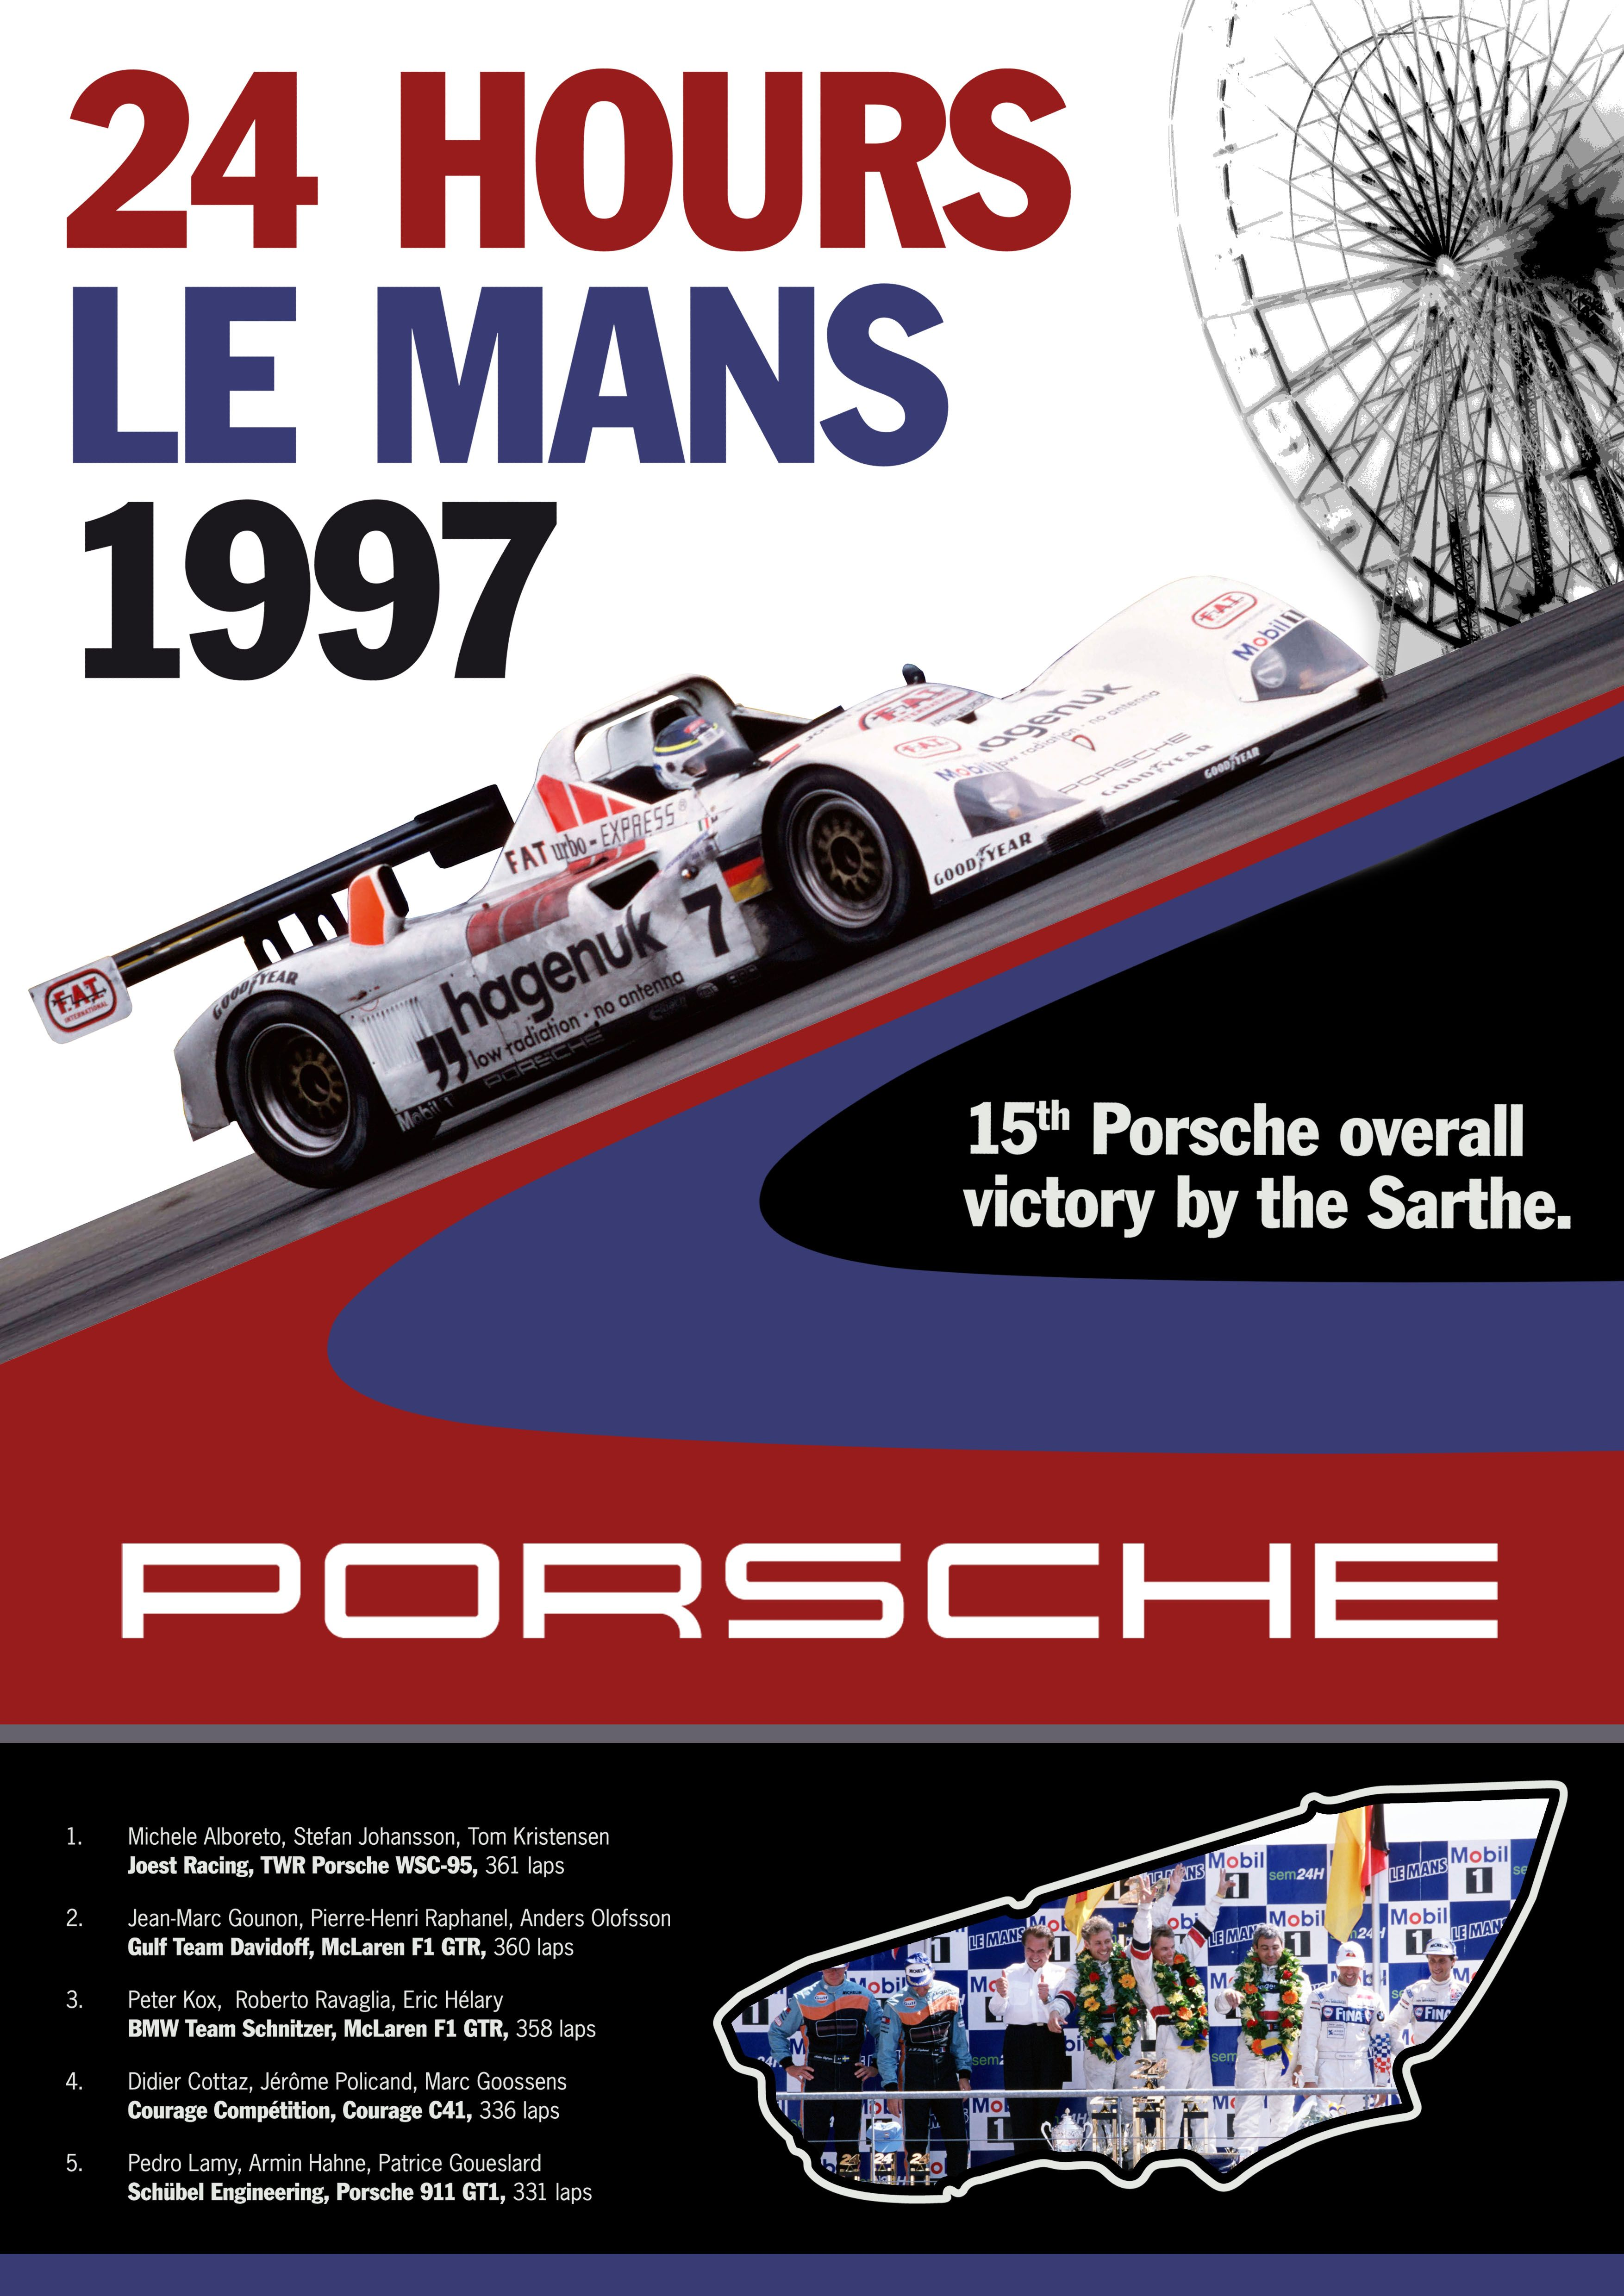 porsche le mans 1997 poster b design contest the missing poster of the 15th le mans victory. Black Bedroom Furniture Sets. Home Design Ideas